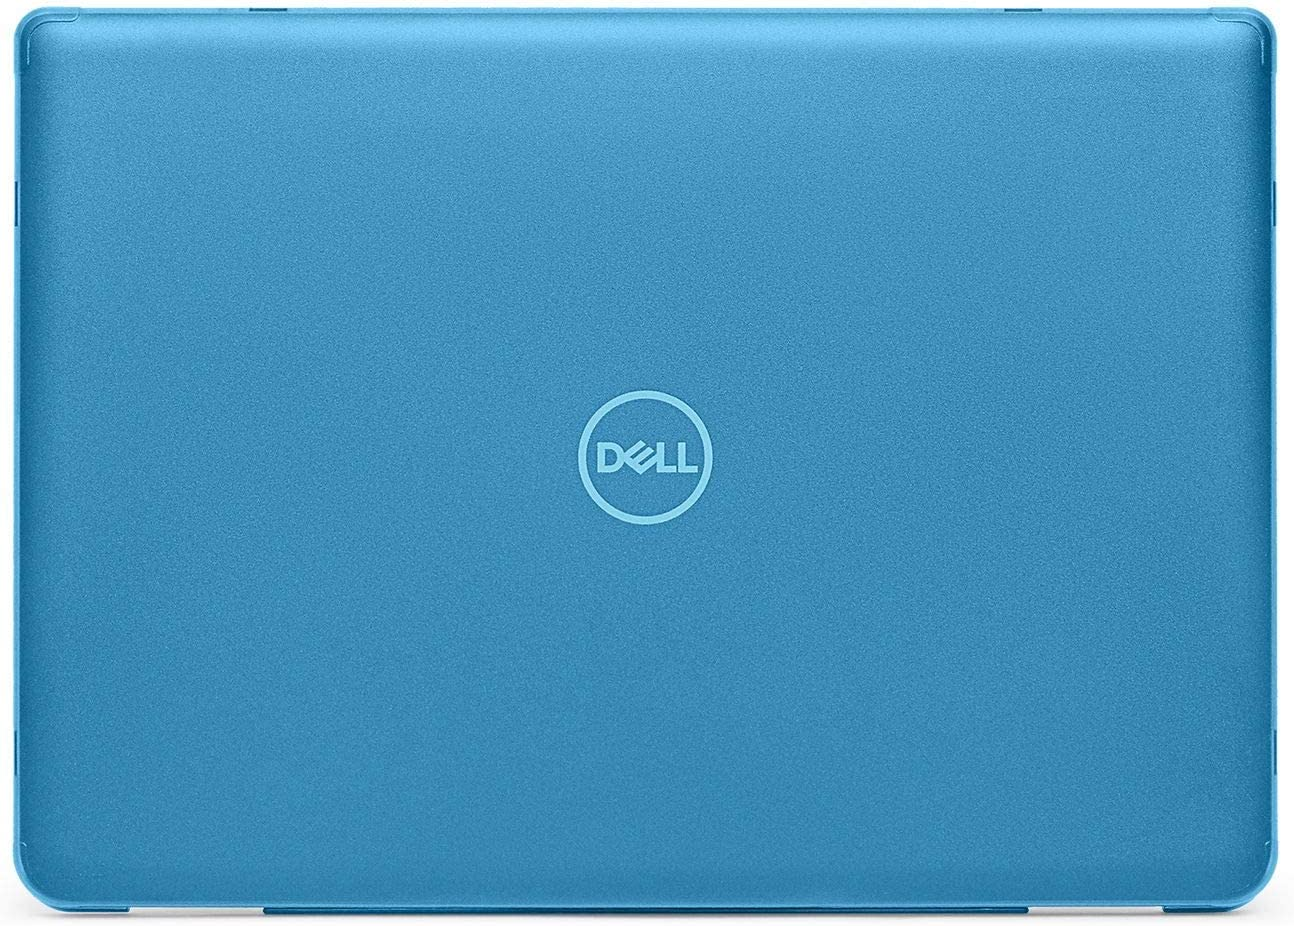 "mCover Hard Shell Case for New 2020 14"" Dell Latitude 3410 Laptop Computers (NOT Compatible with Other Dell Latitude Computers) (Aqua)"